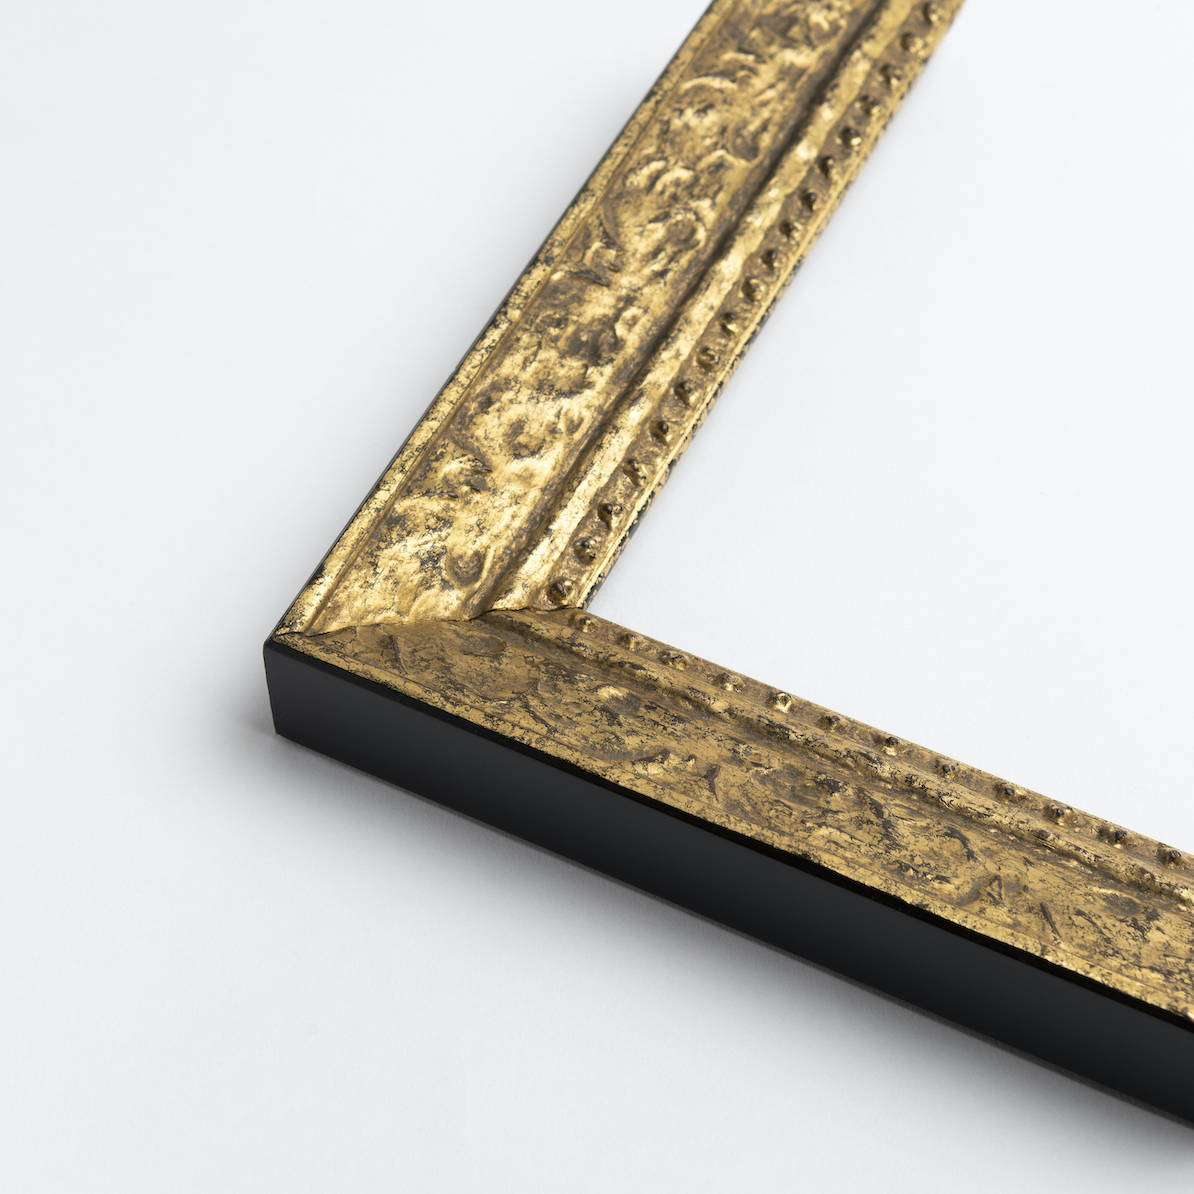 TV-Mirror Patterned Gold Frame by FRAMING TO A T